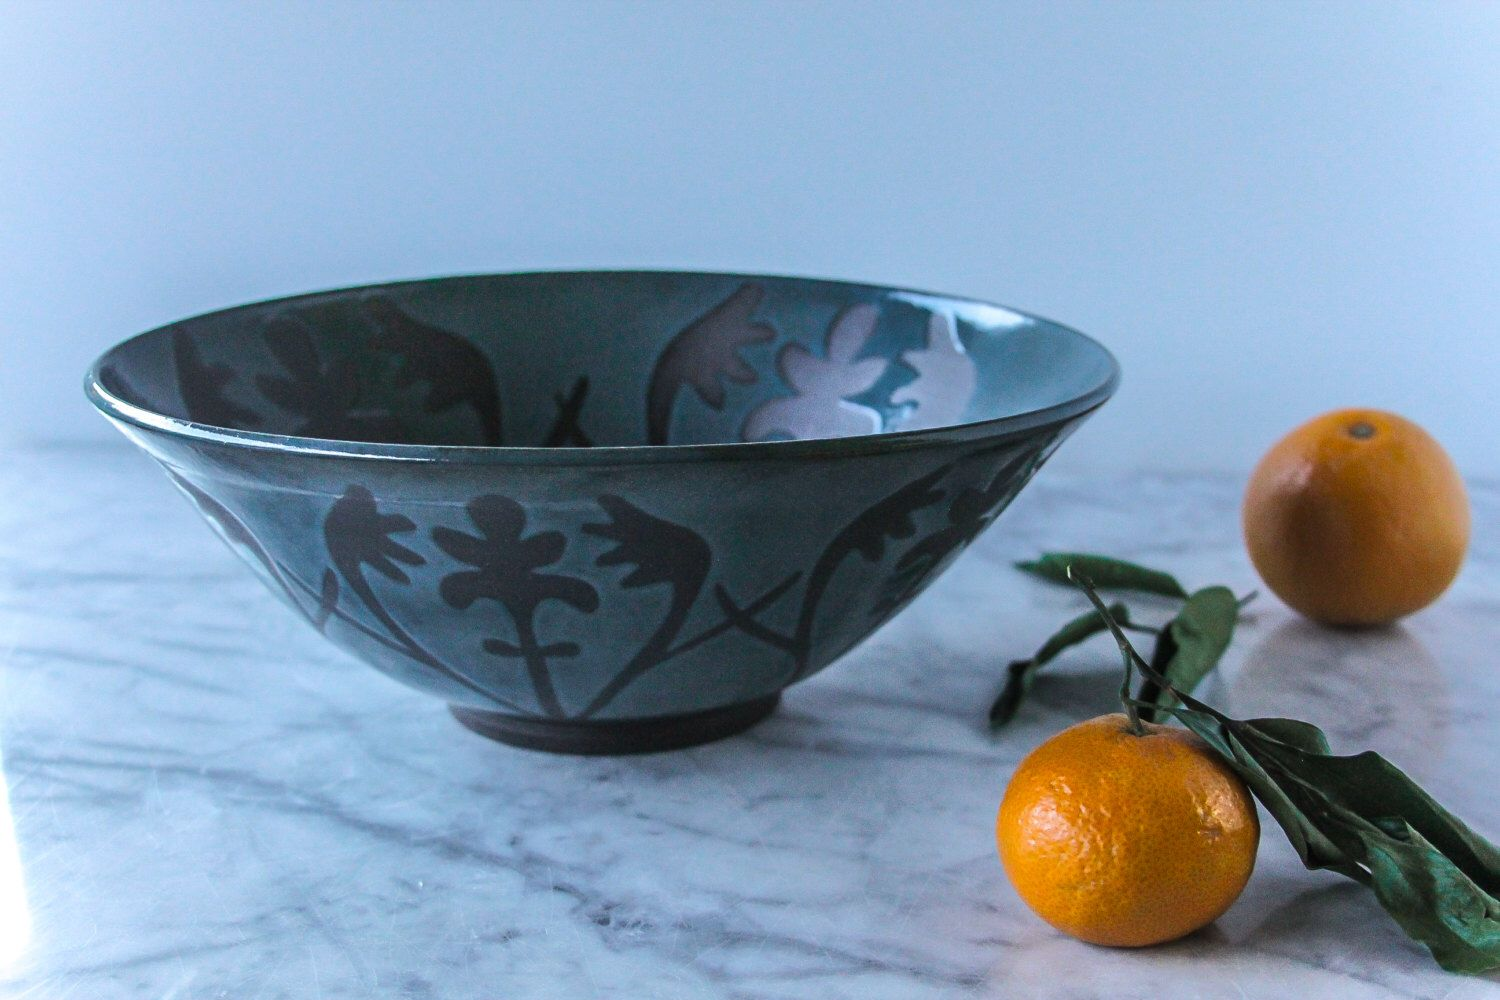 Ready to Ship: XL Serving Bowl, Elizabeth Pattern, Teal/Turquoise, Handmade Bowl by FoxtailPottery on Etsy https://www.etsy.com/ca/listing/484821330/ready-to-ship-xl-serving-bowl-elizabeth